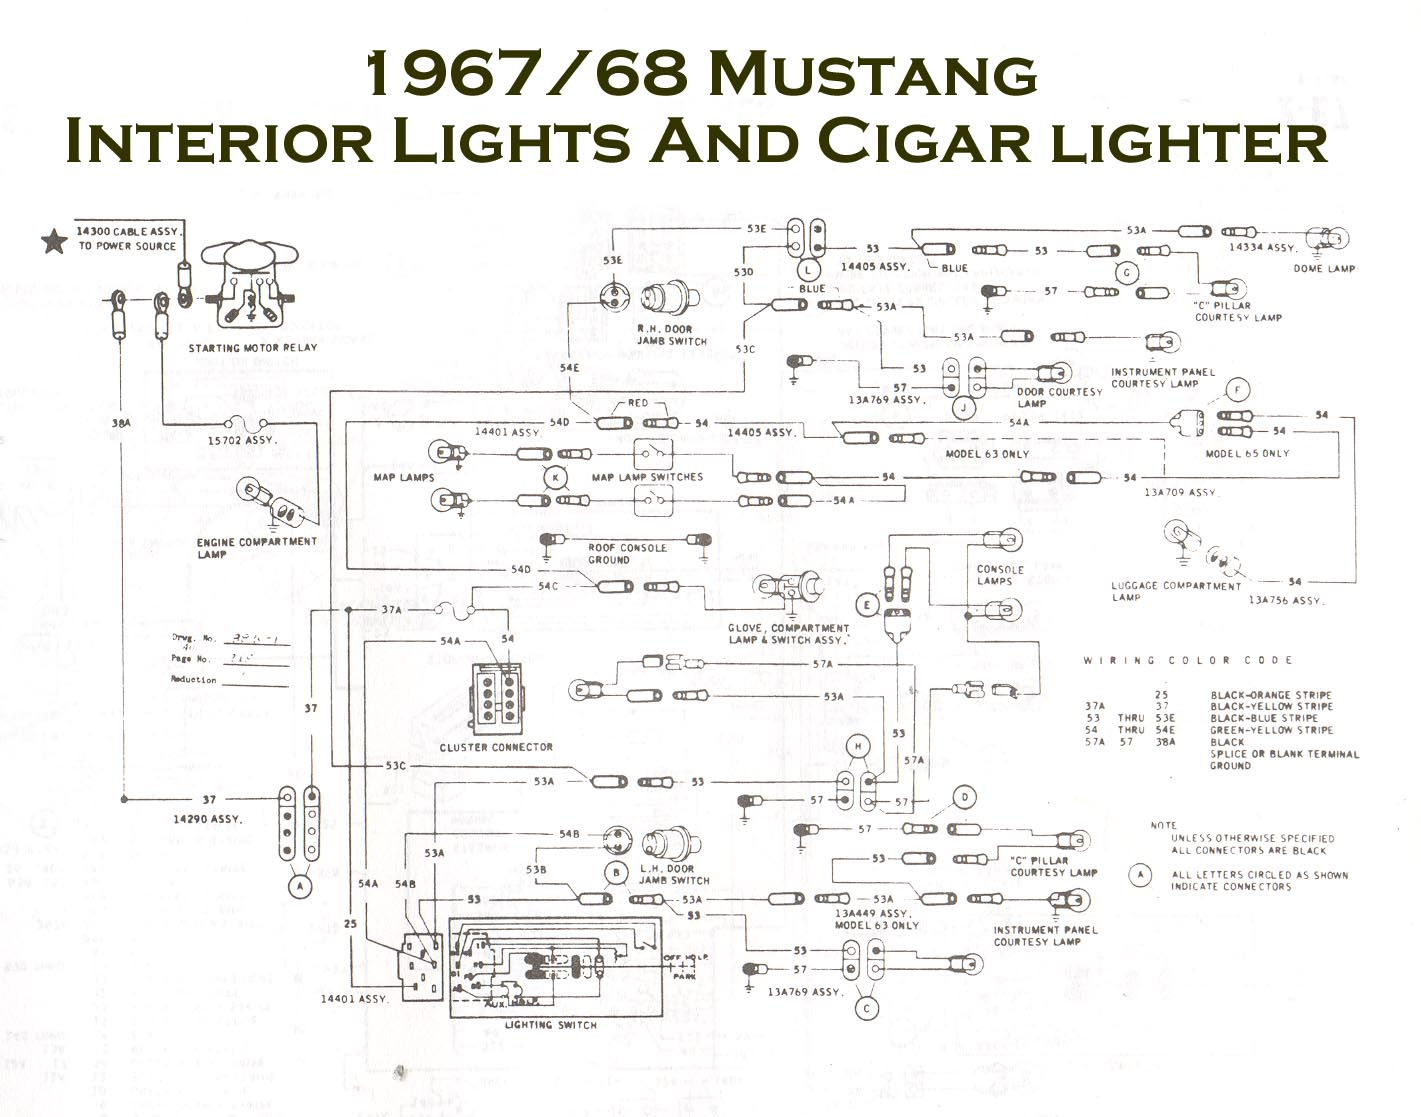 1967 68_console_wiring_diagram vintage mustang wiring diagrams wiring harness 67 mustang at bakdesigns.co